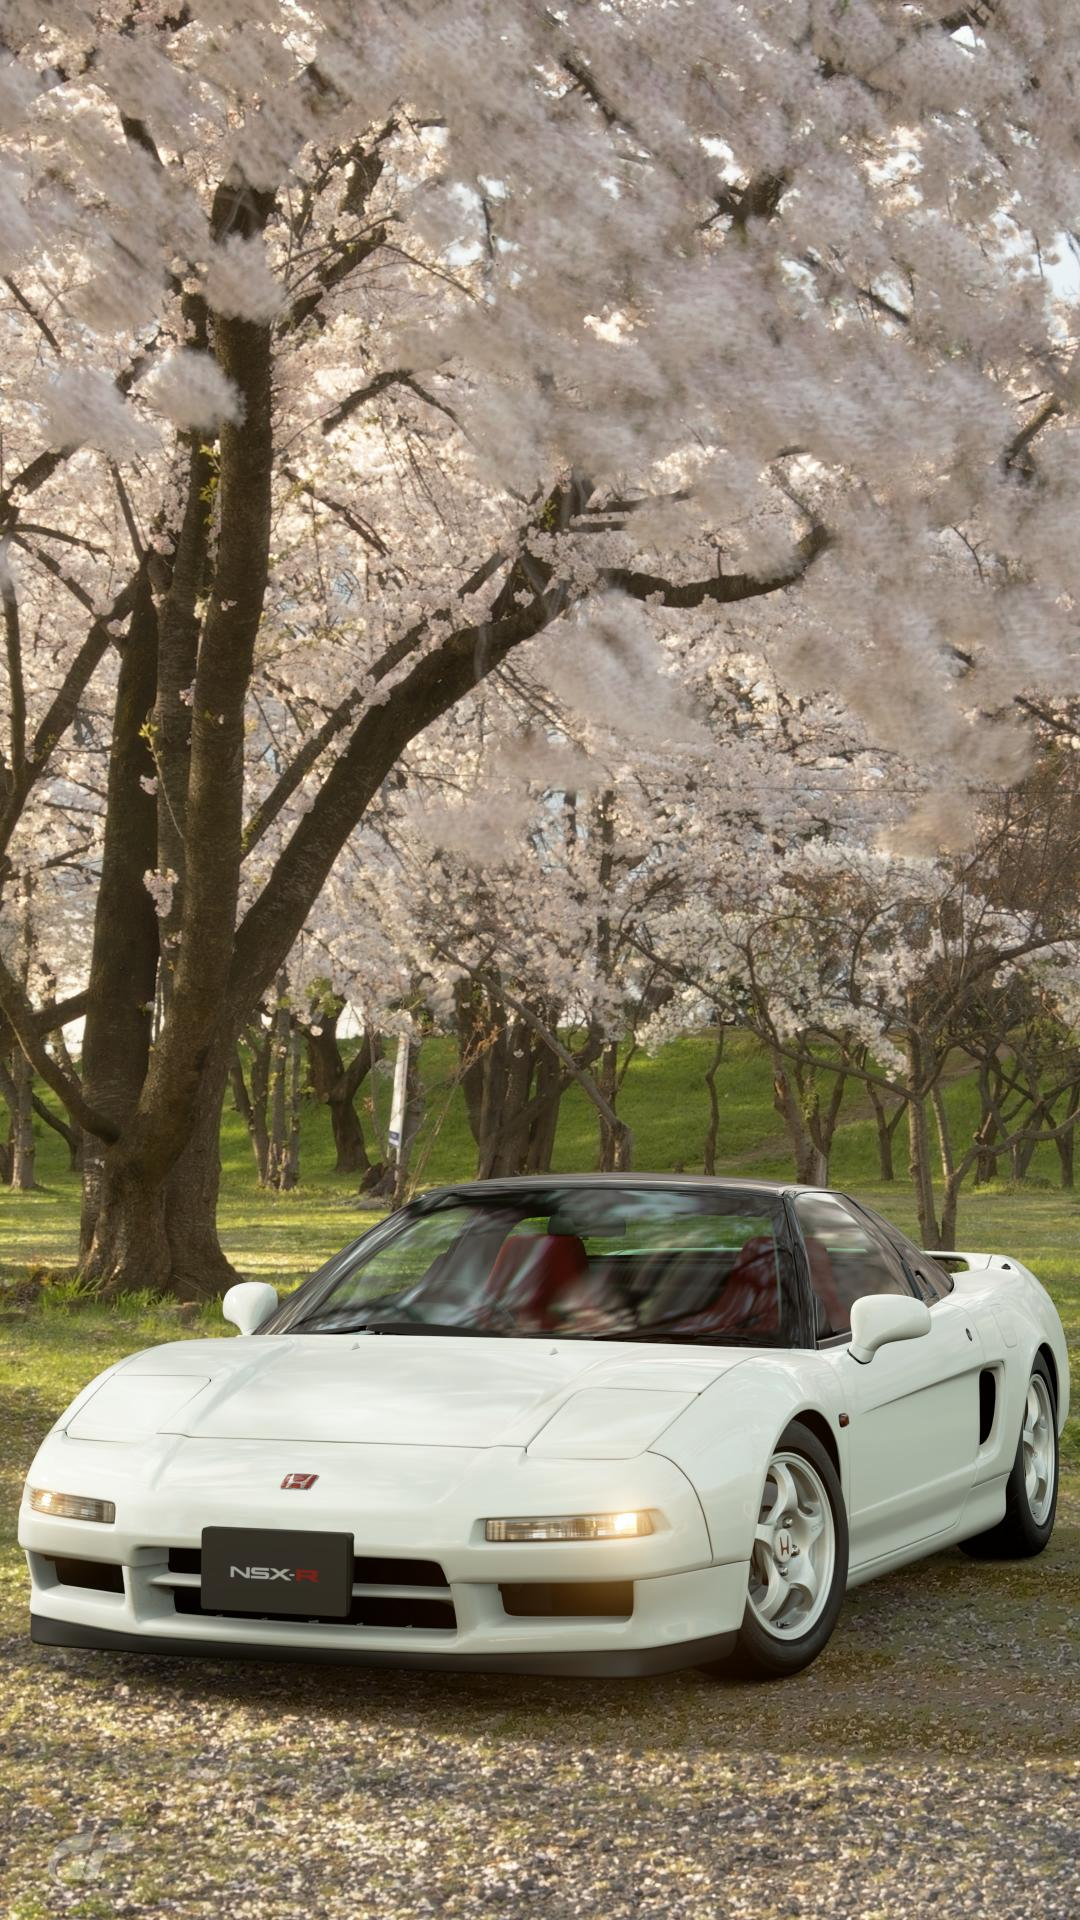 NSX Type R iPhone wallpaper - Scapes Photos by jdmattpdx